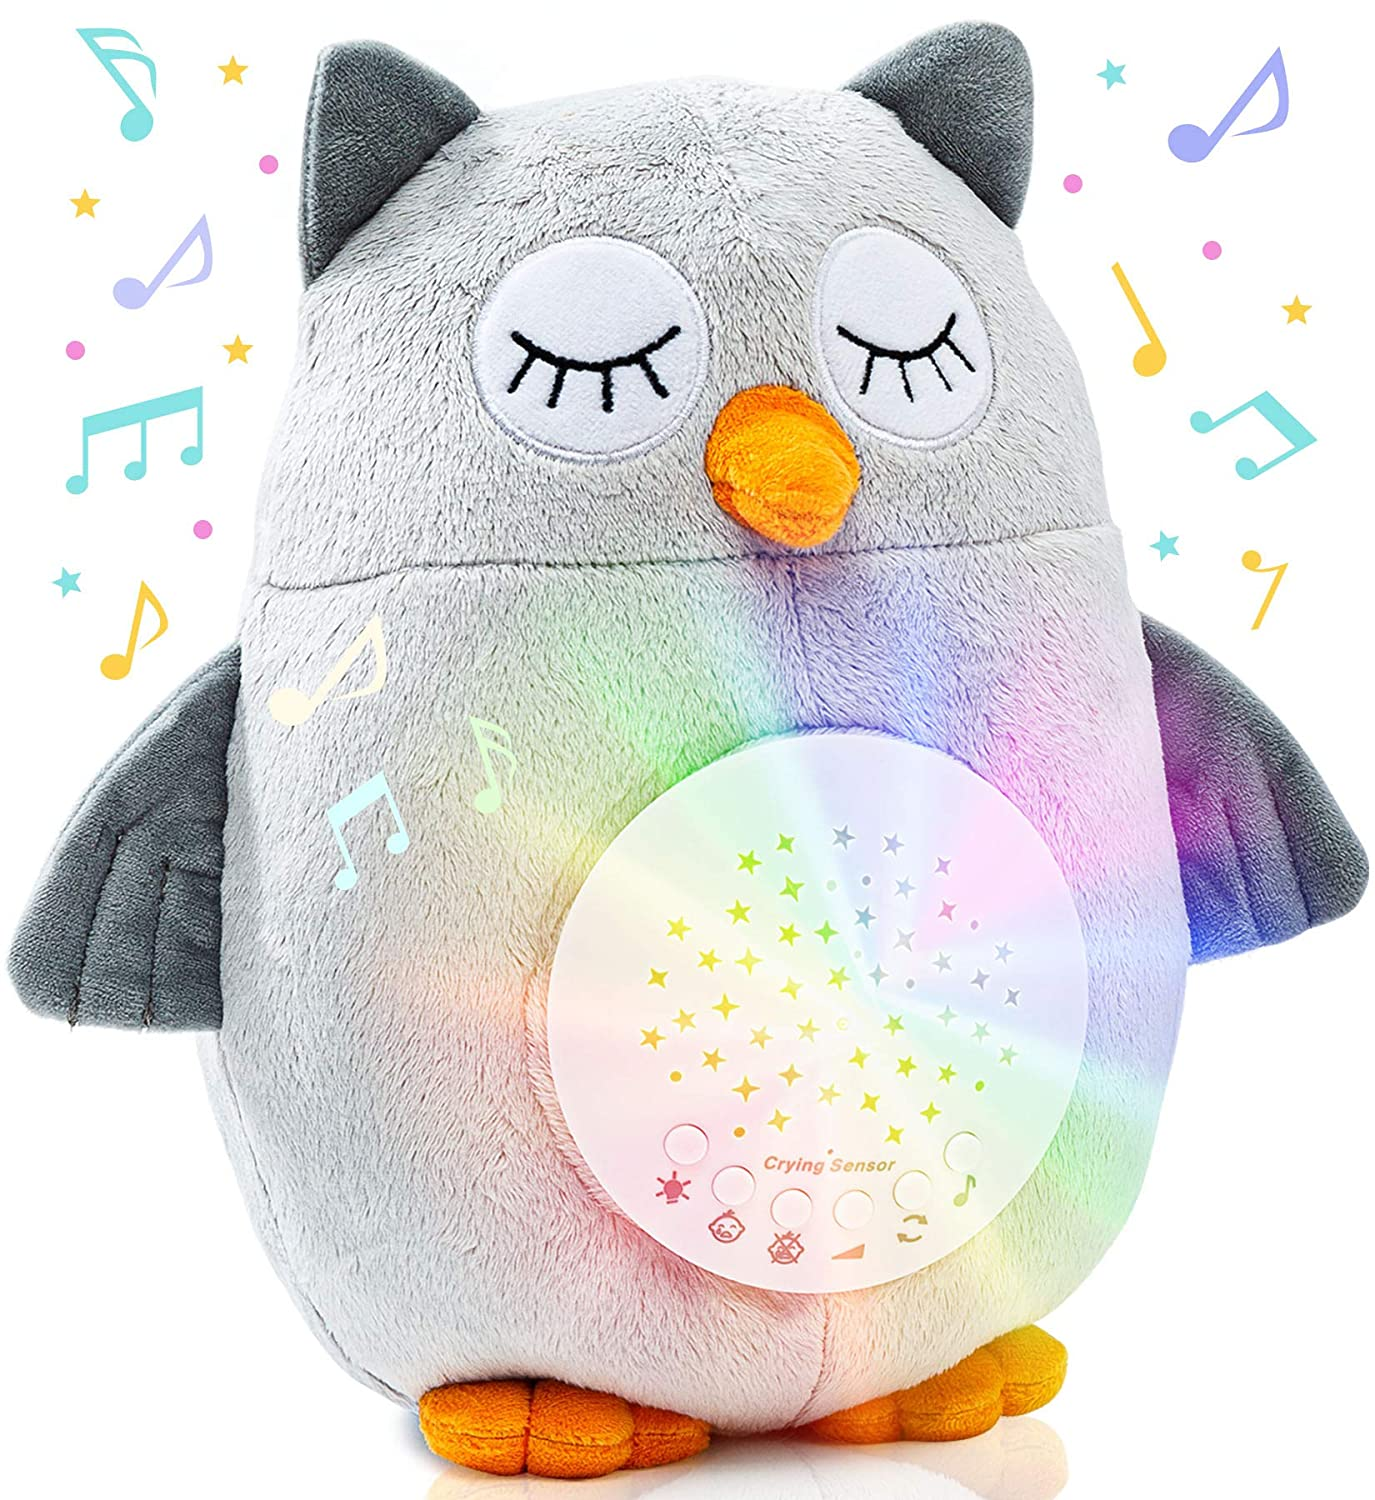 Plush Night Light Cry Detector - W/ 10 Lullabies & White Noise - Baby Soothing Sound Machine & Projector by Roccababy - Ceiling & Crib Cry Sensor Soother Part of Baby Necessities & Baby Registry Items